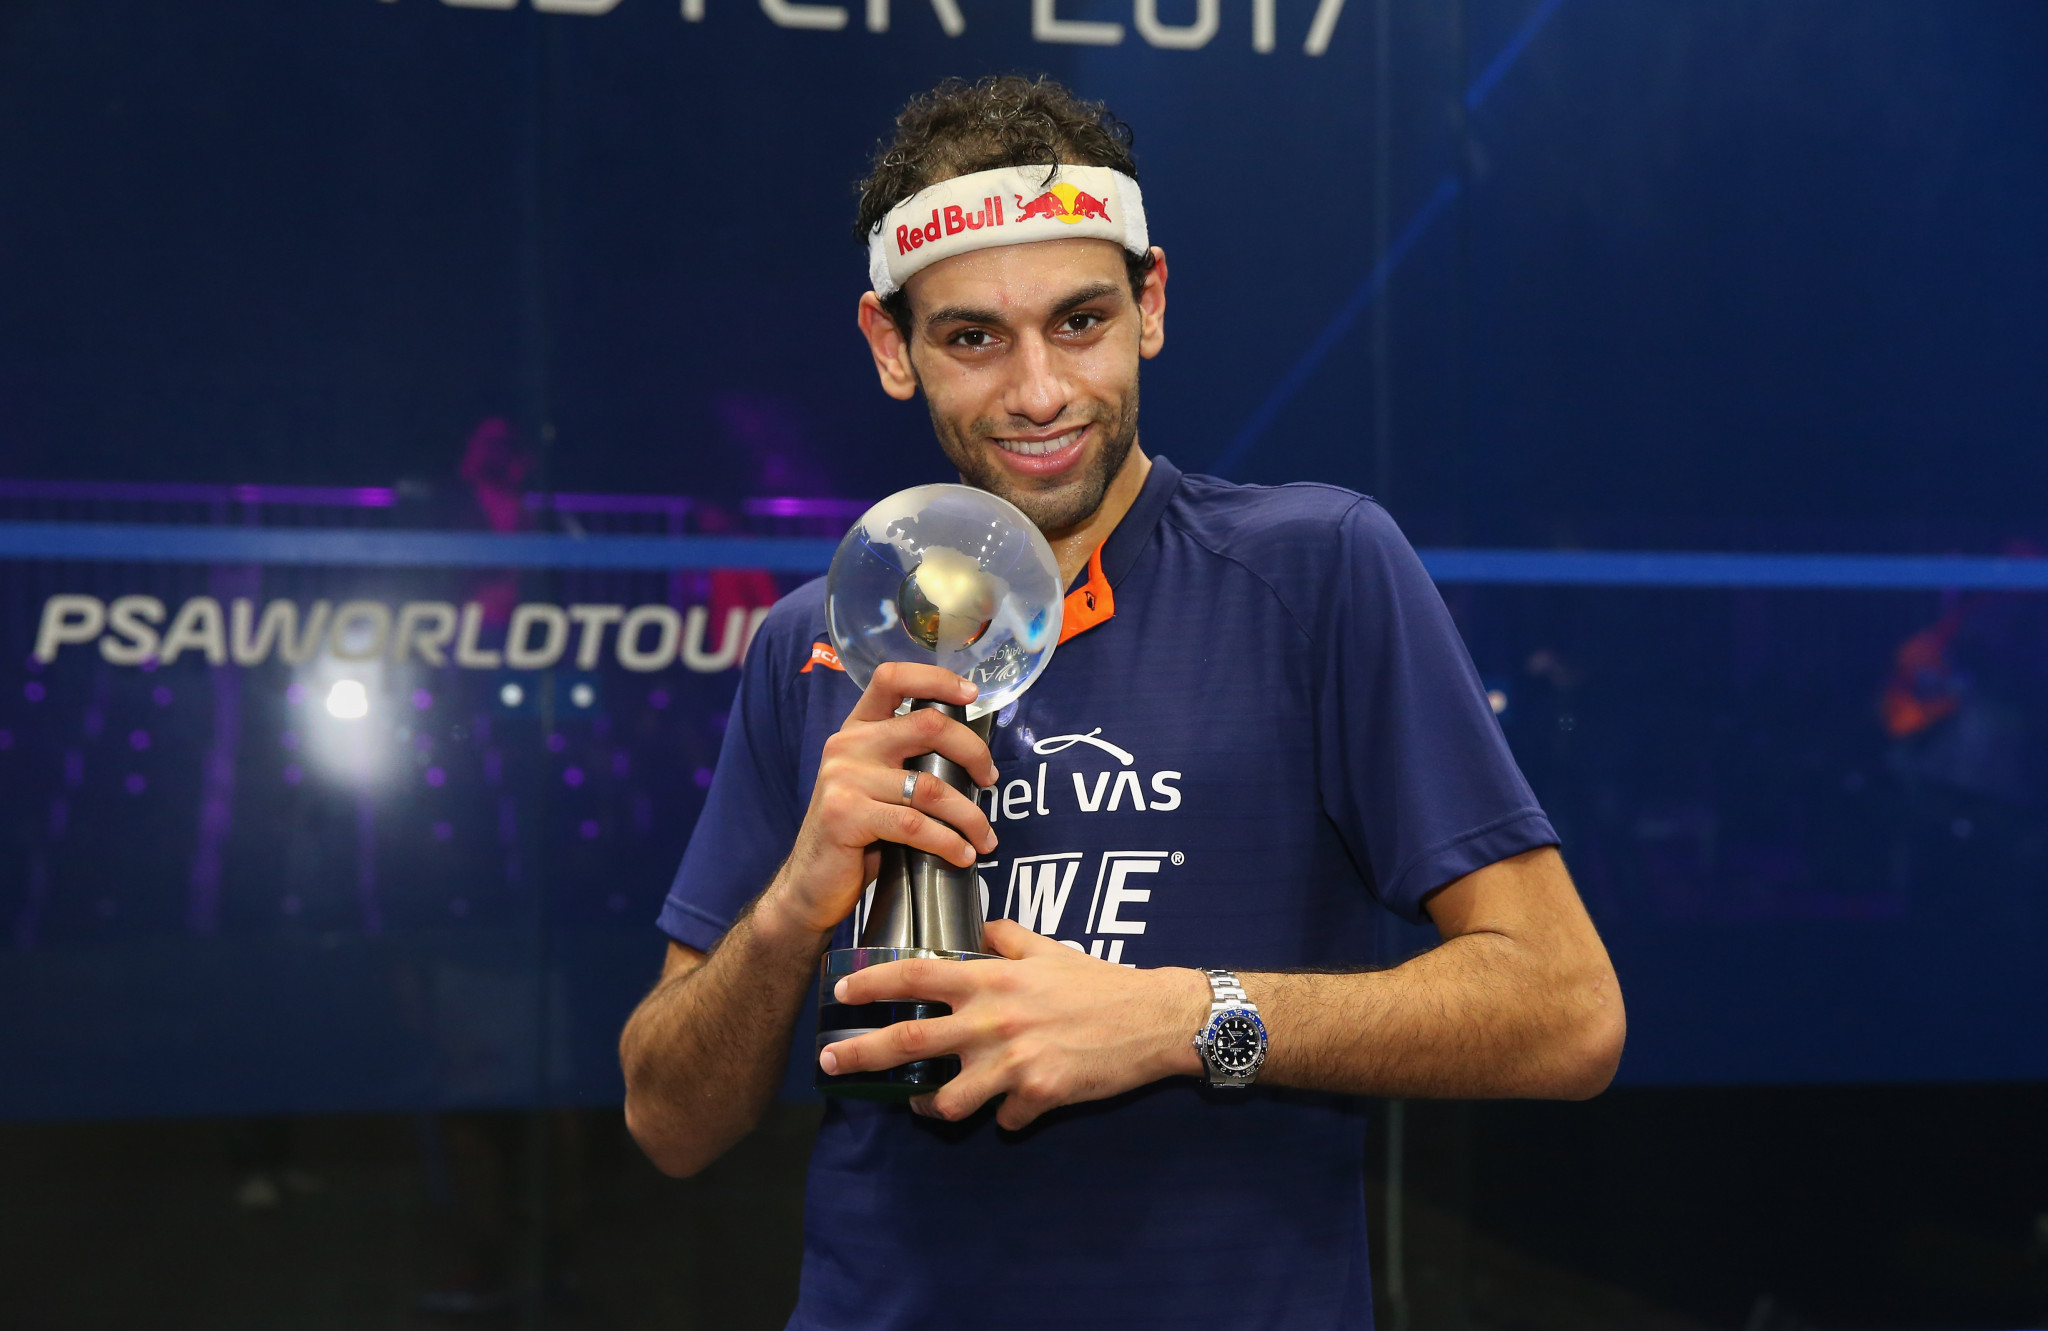 Egyptians tipped to dominate PSA British Open